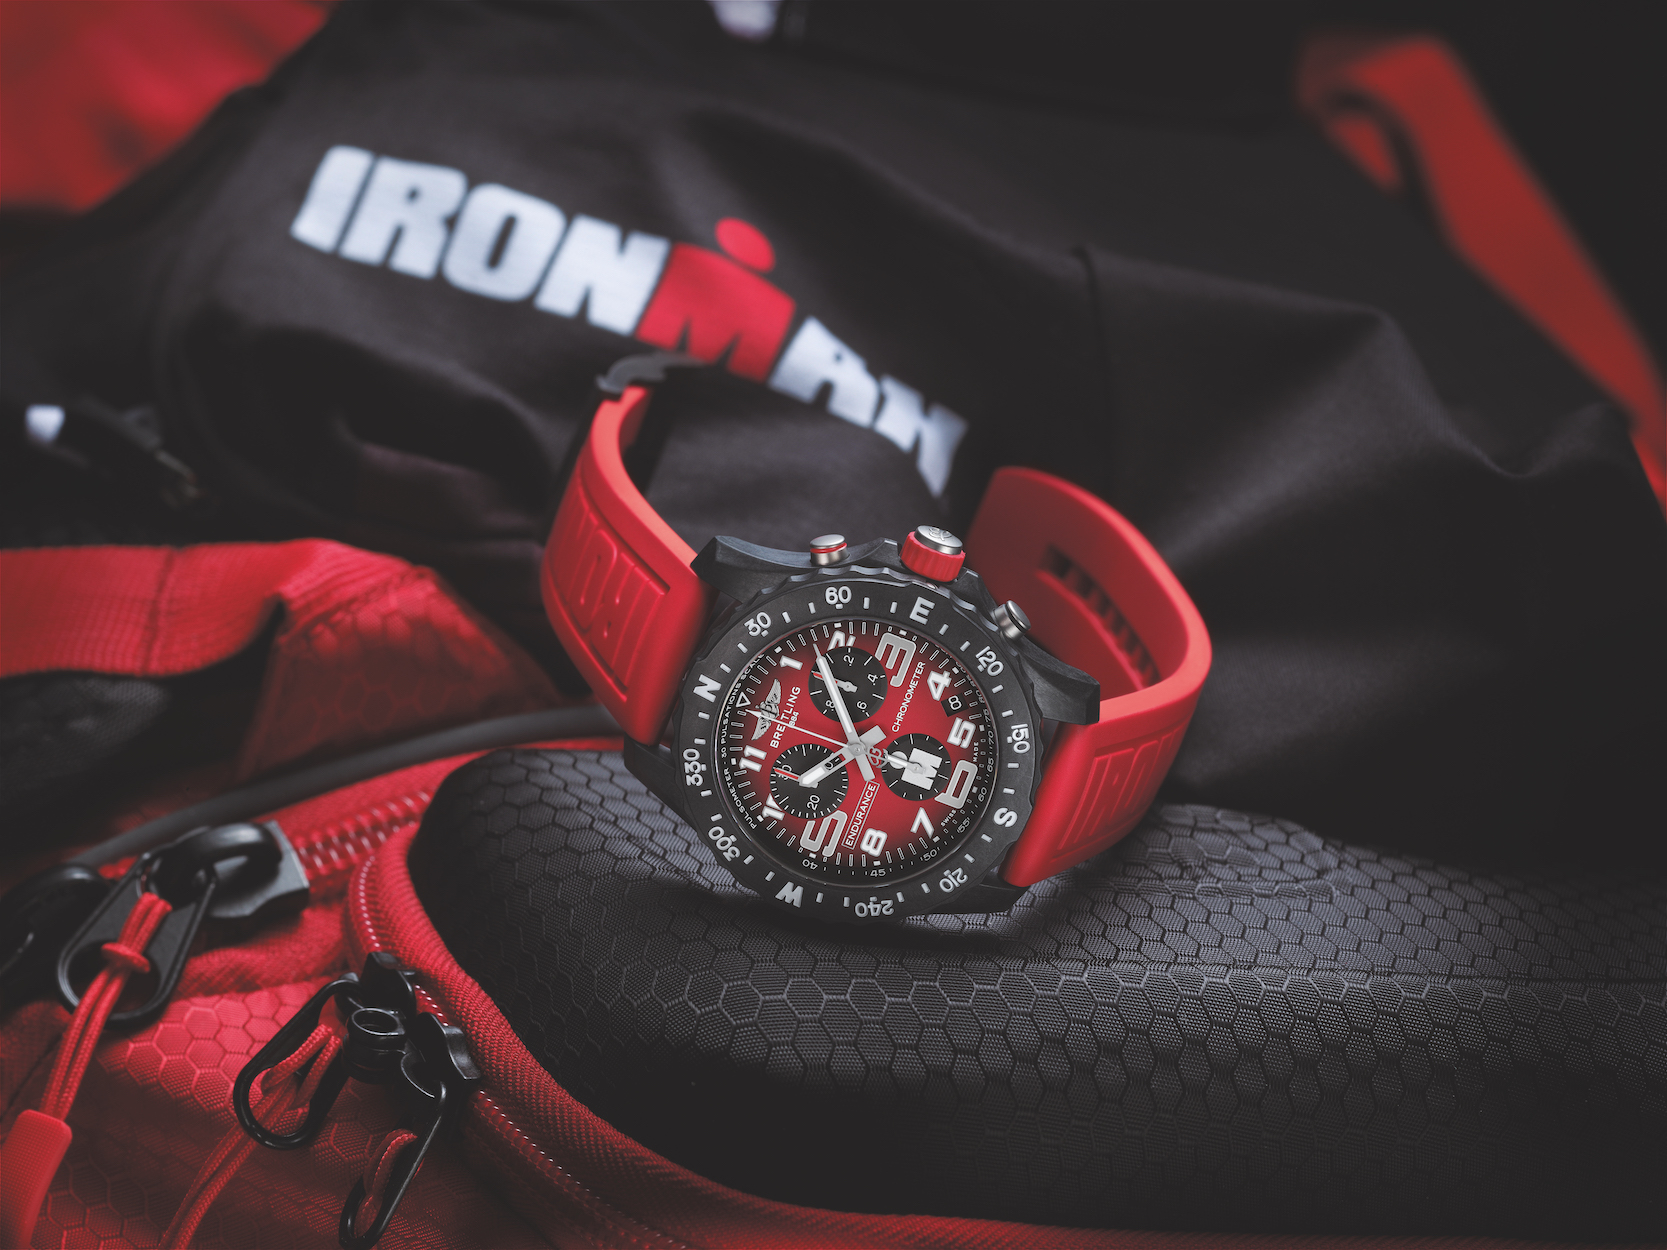 Breitling Endurance Pro IRONMAN watch honors the new partnership with Breitling as the Official Luxury Watch of Ironman events.